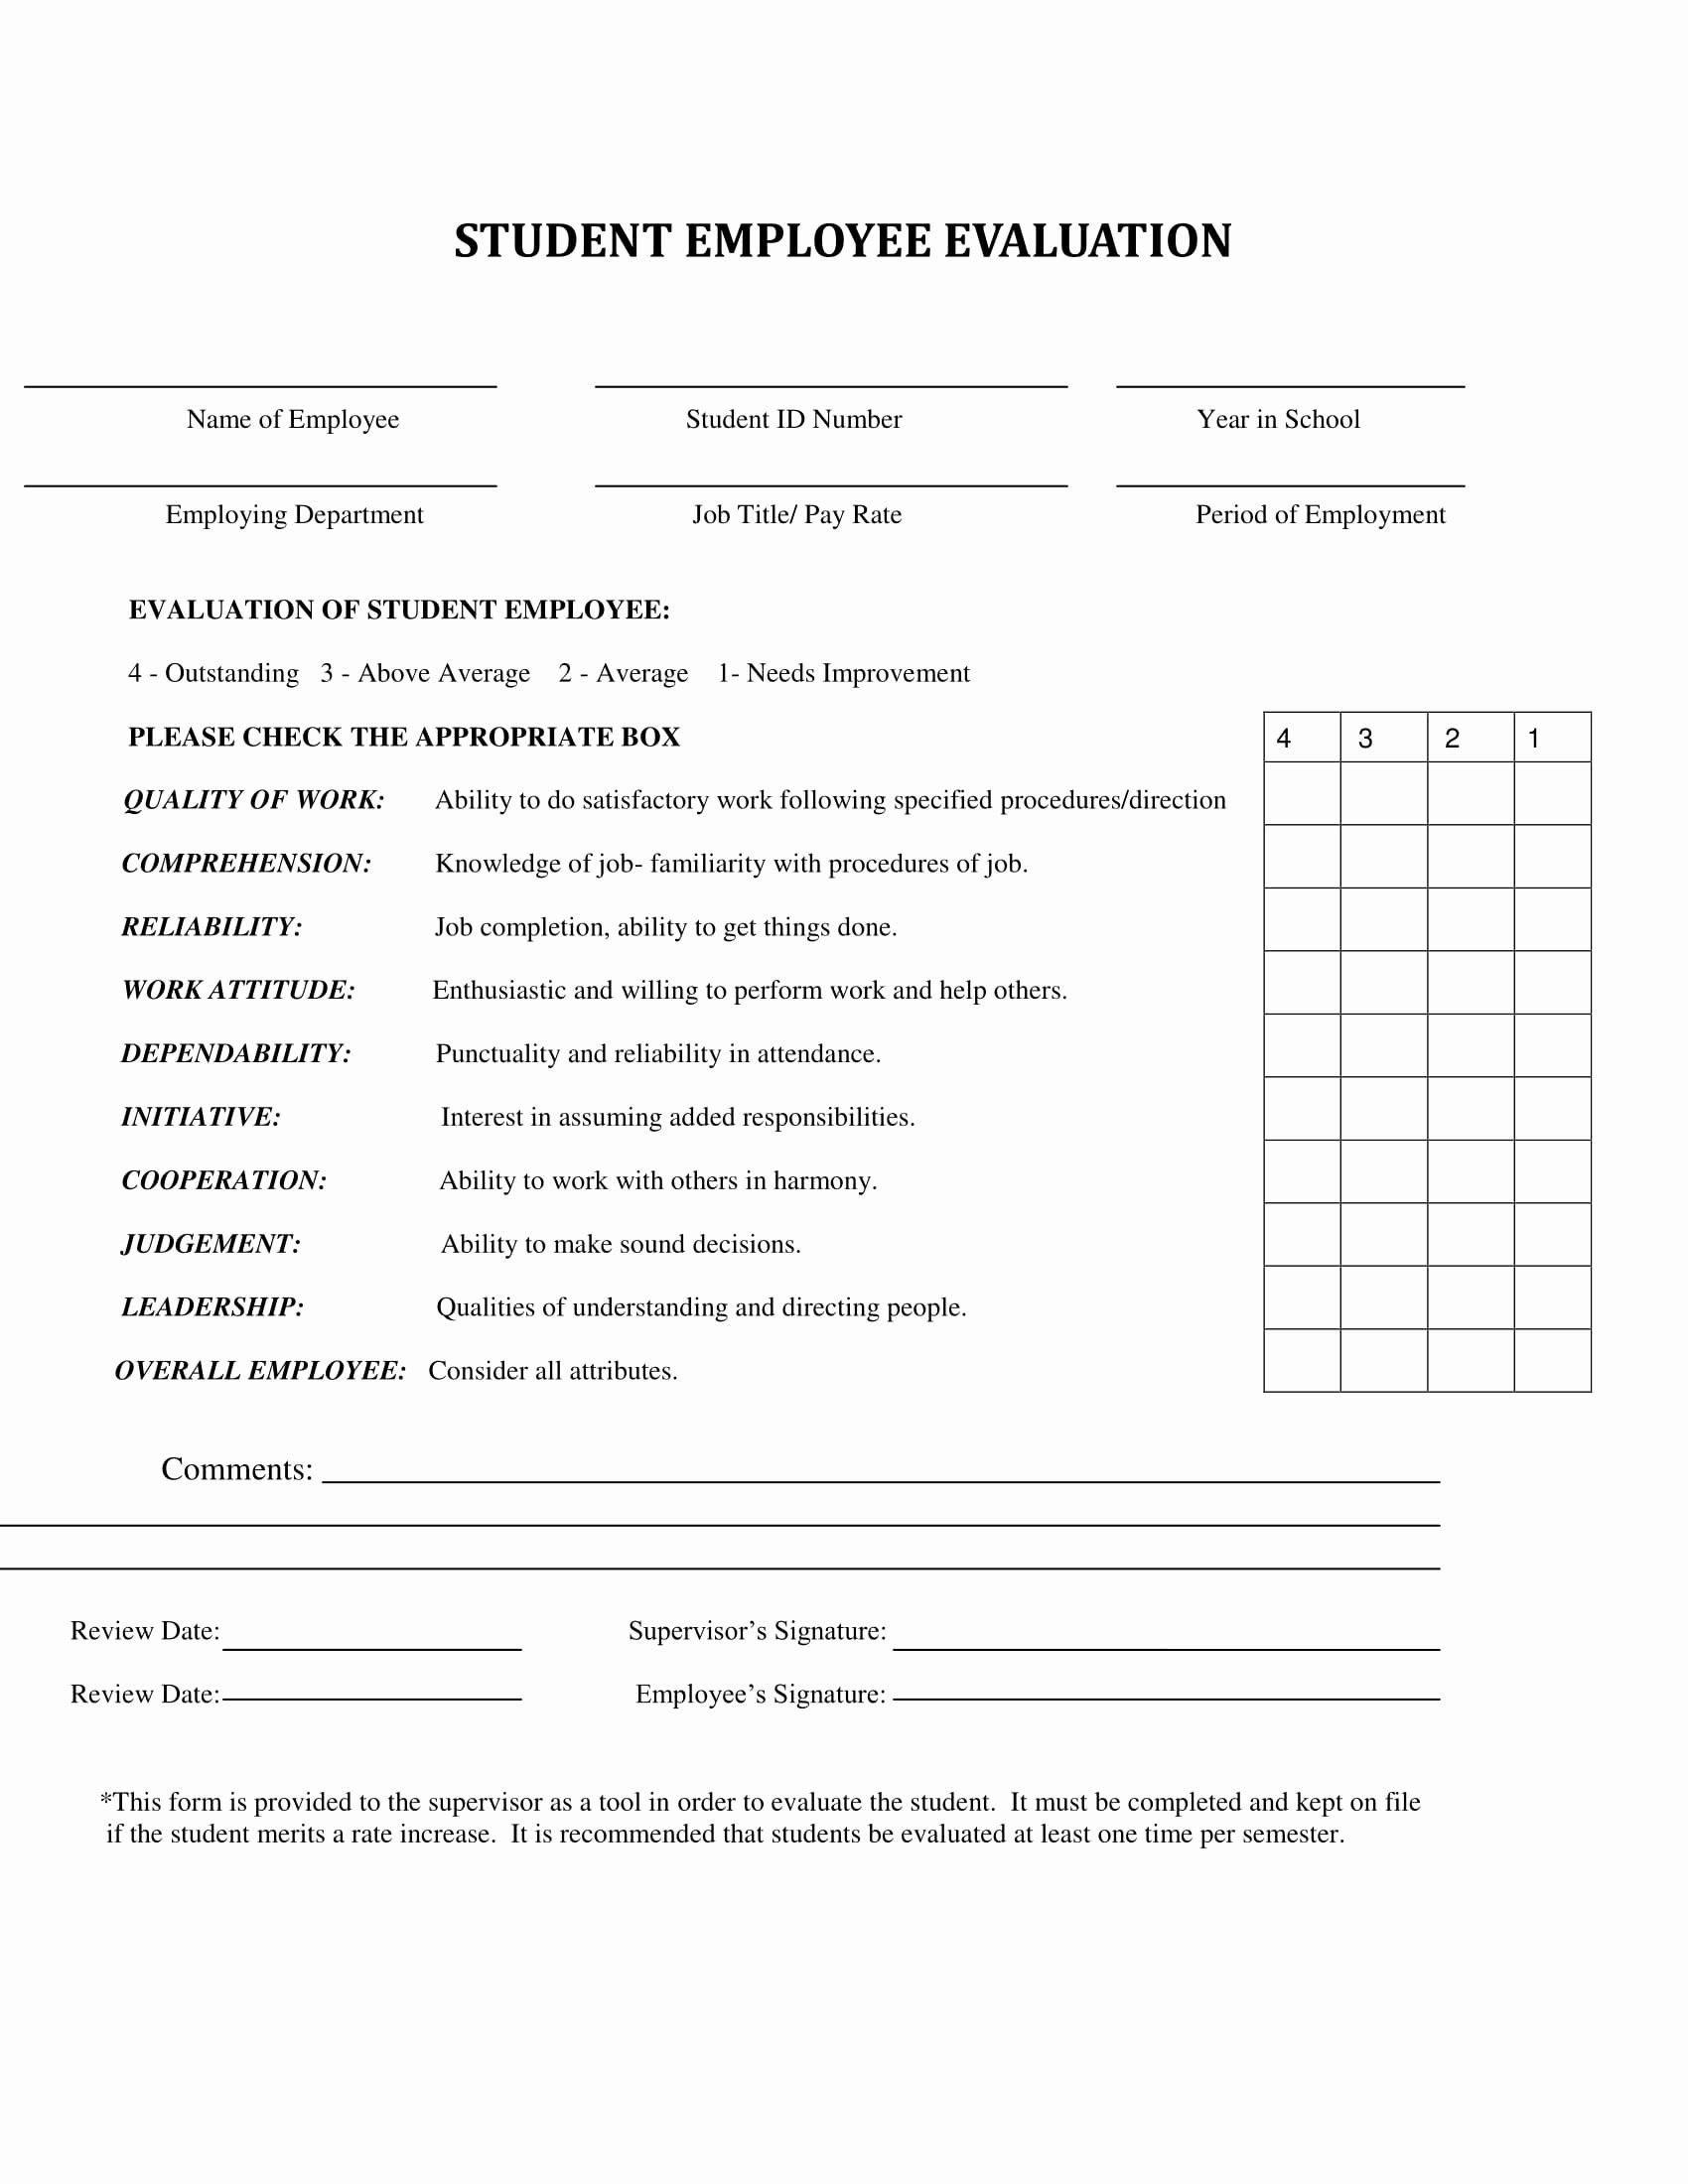 Student Performance Evaluation form Luxury 9 Employee Self Reviews forms Free Word Pdf format